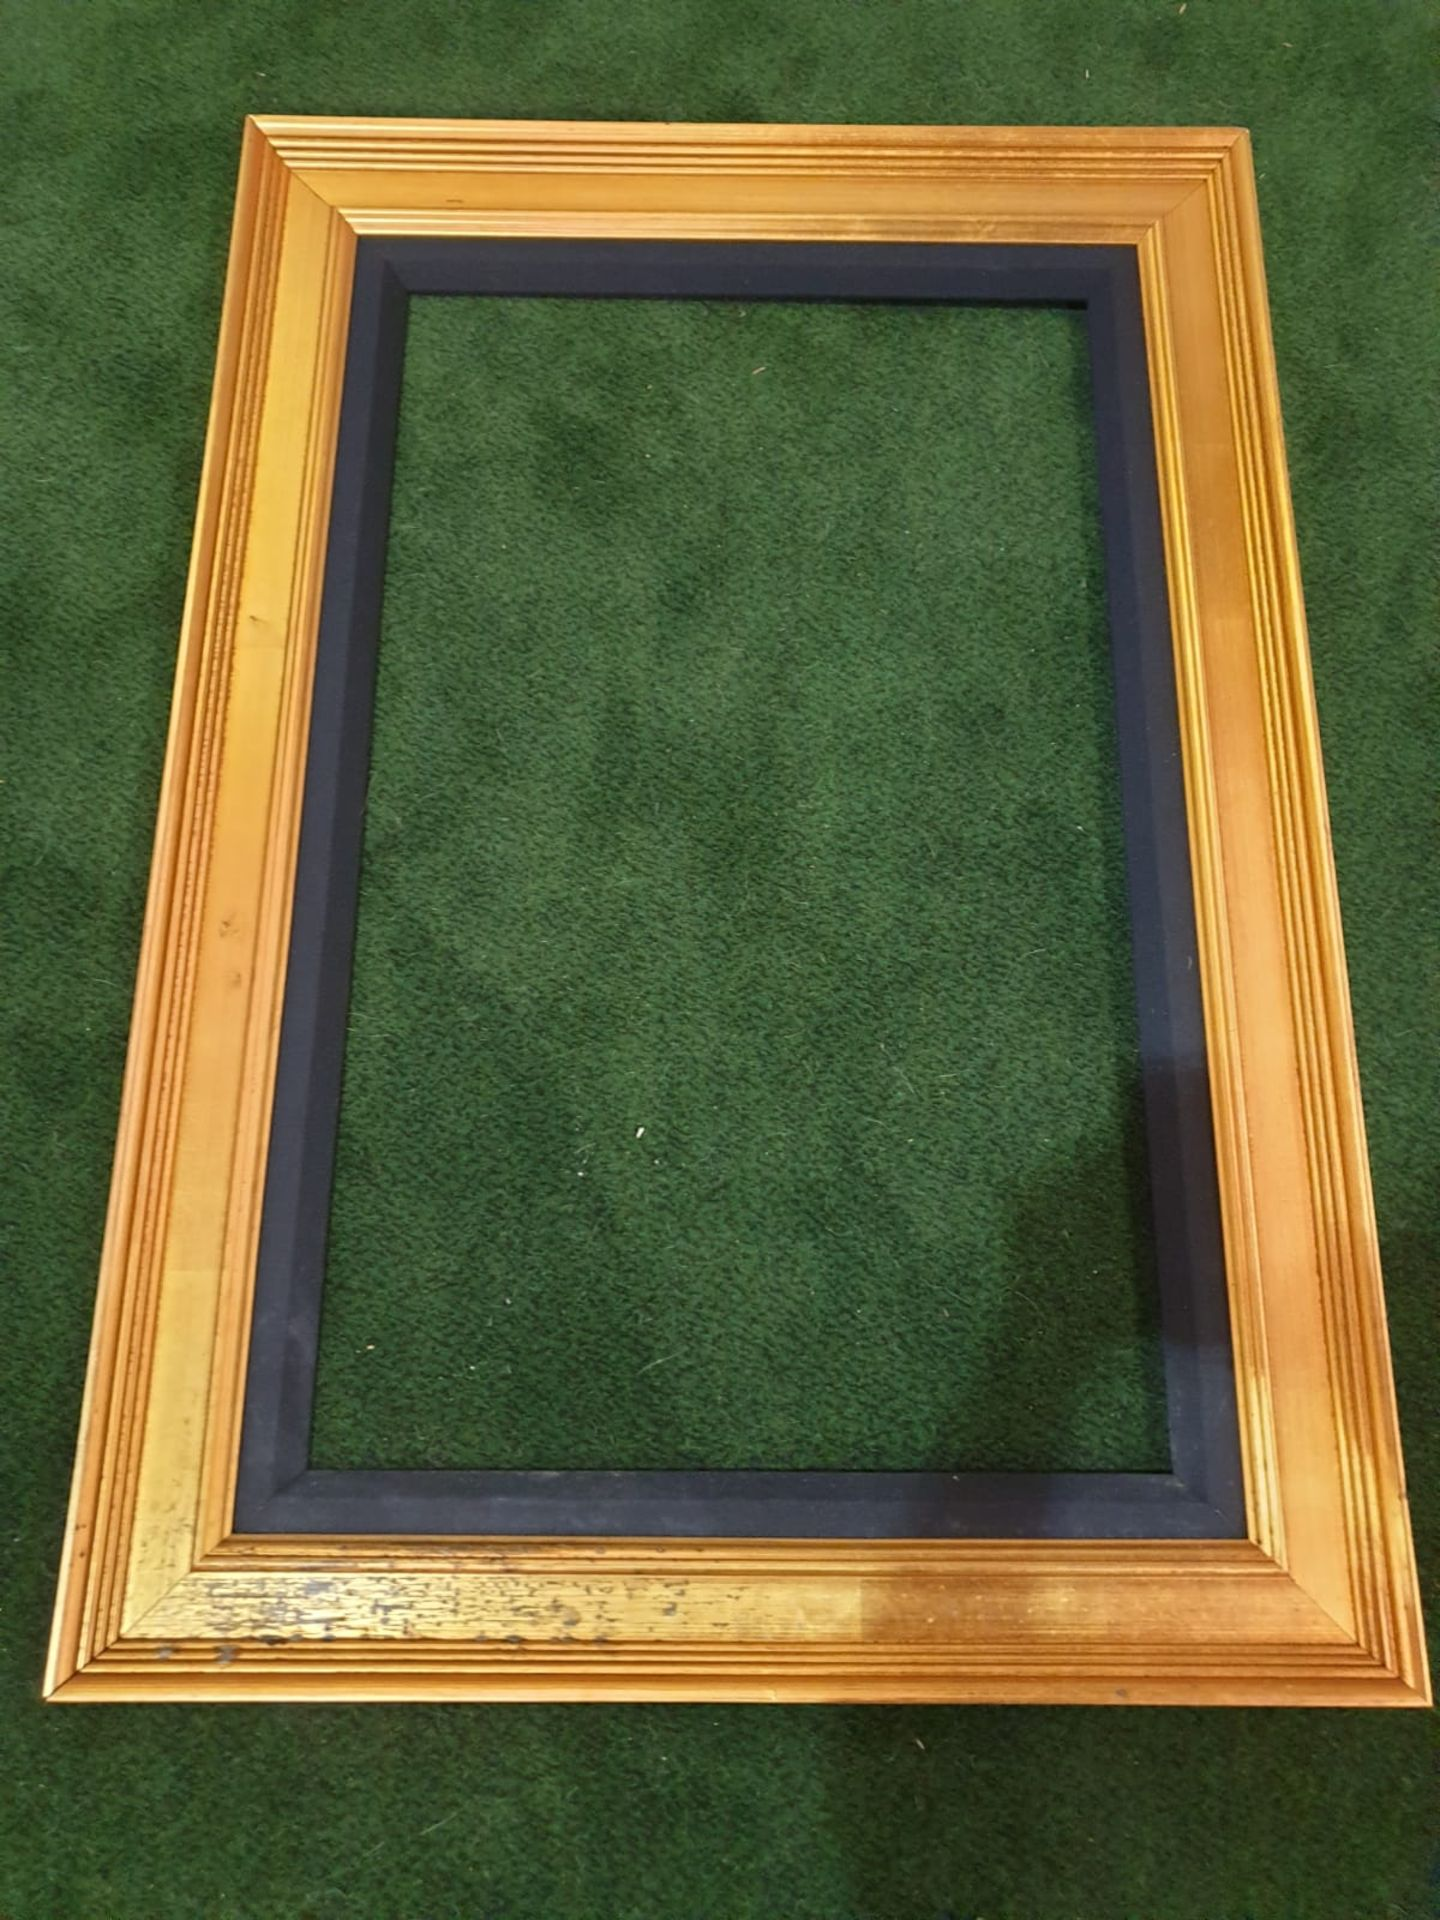 Gilt picture frame 80 x 116cm - Image 2 of 3